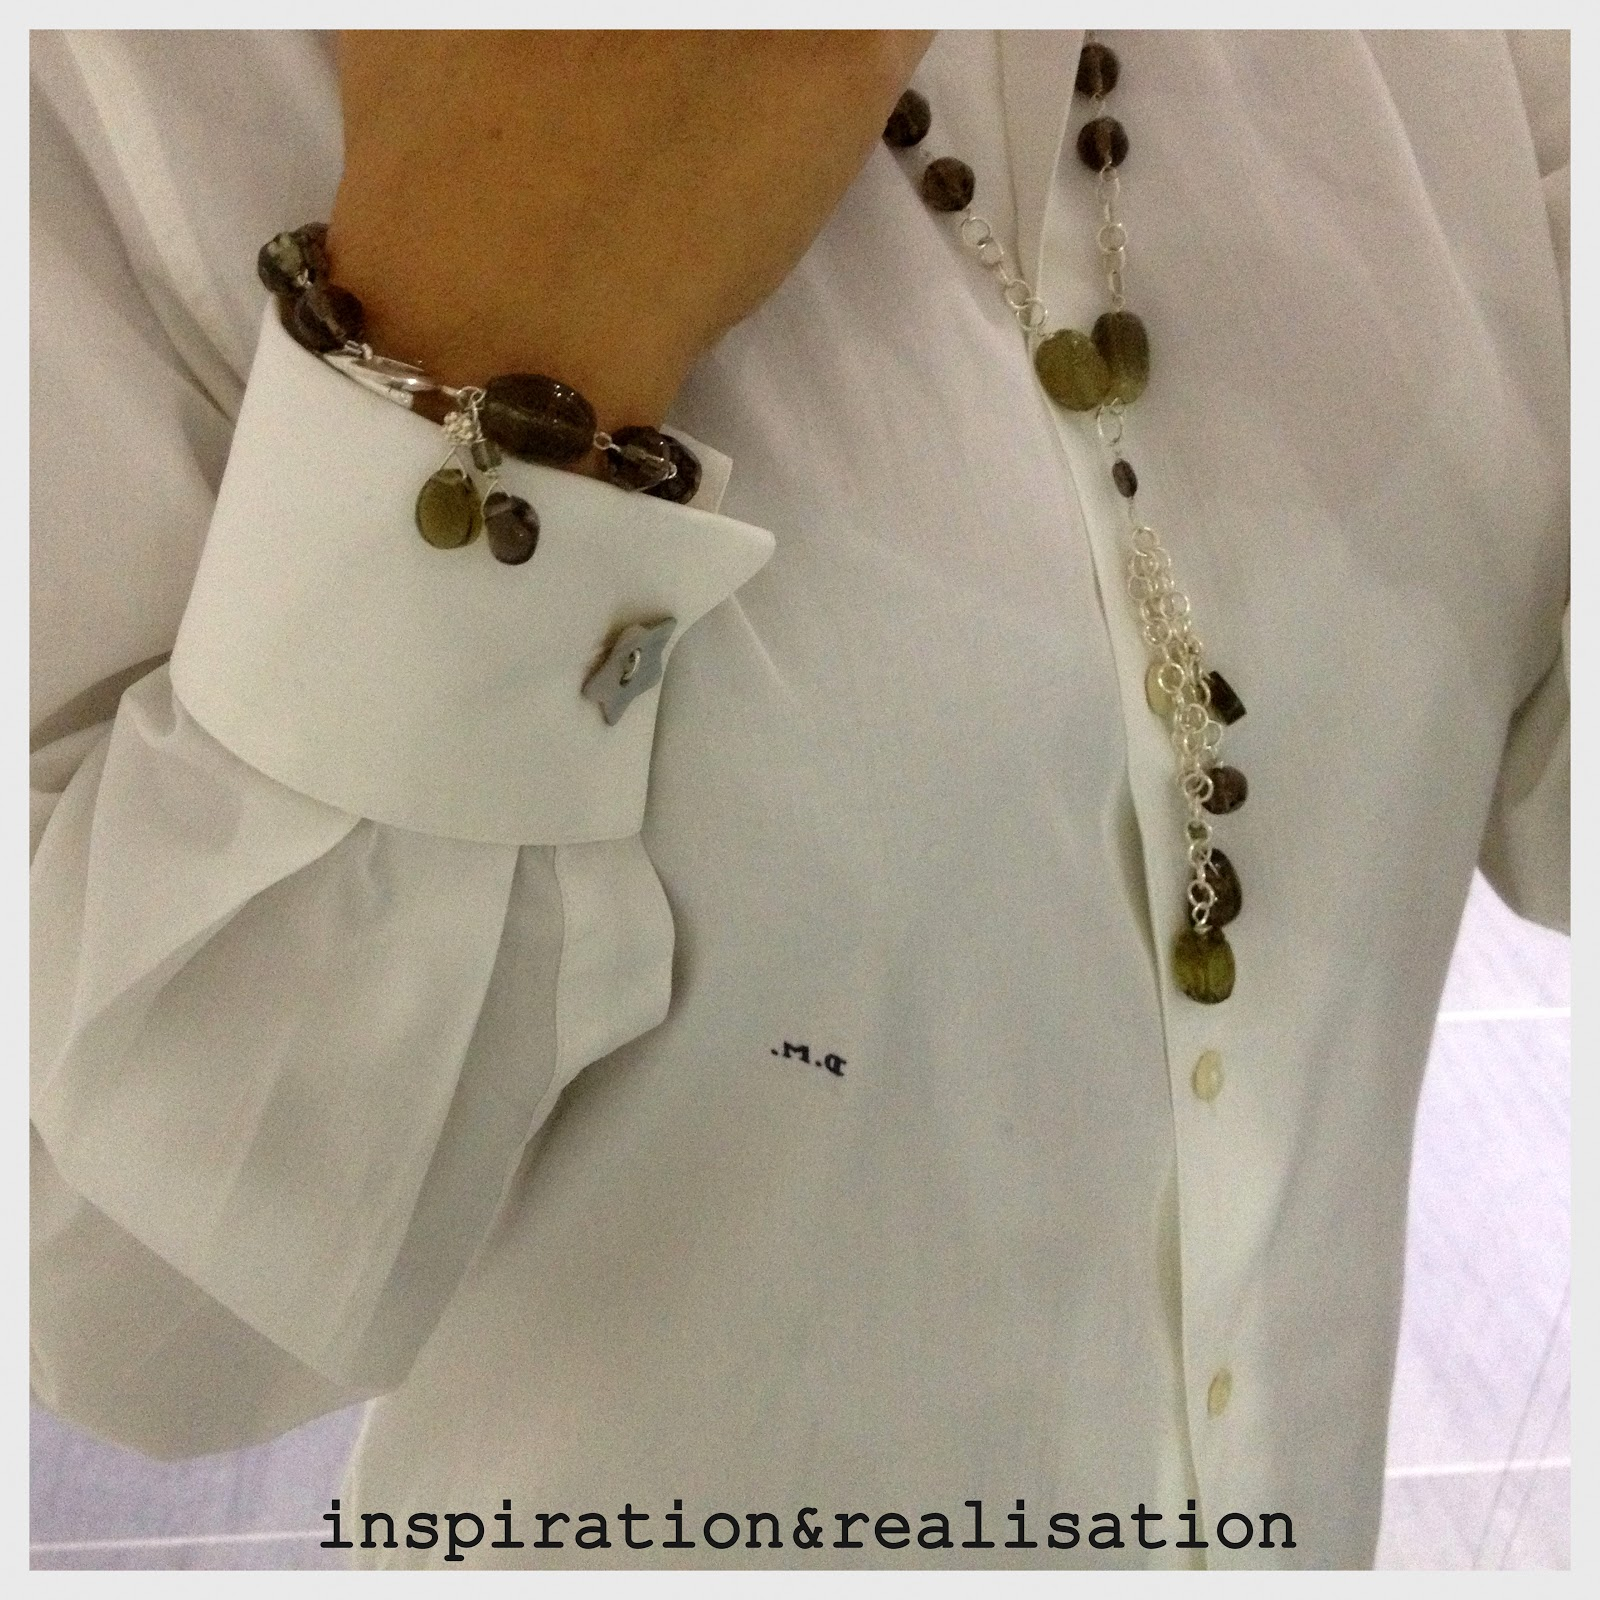 Inspiration And Realisation Diy Fashion Blog Scarf Home: Inspiration And Realisation: DIY Fashion Blog: DIY Cufflinks